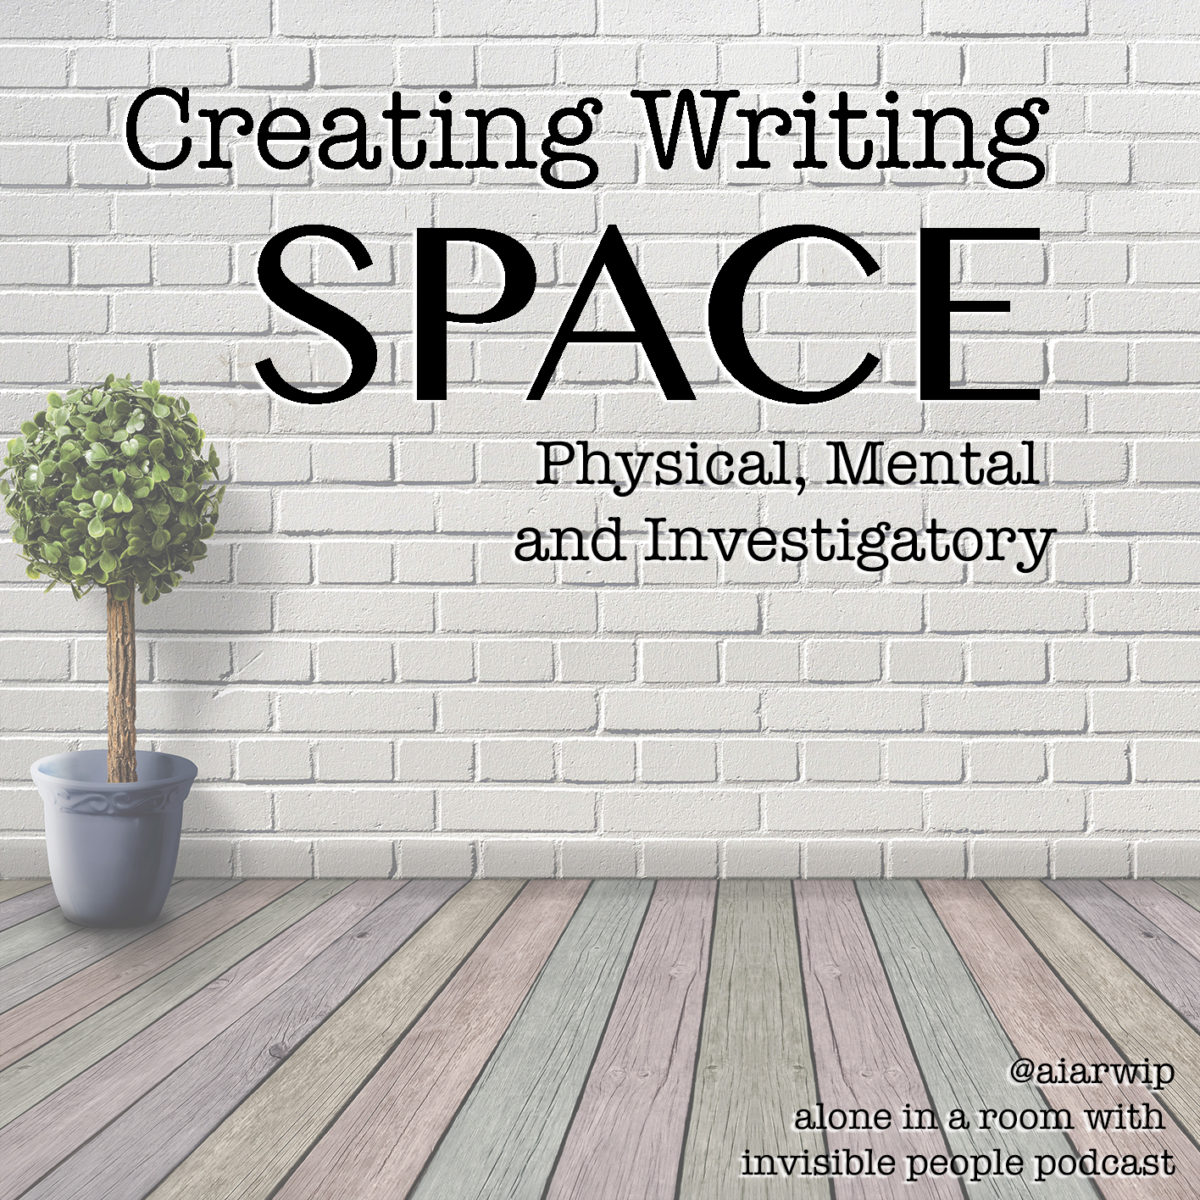 Episode 105: Creating Your Personal Writing Space: Physical, Mental and Investigatory